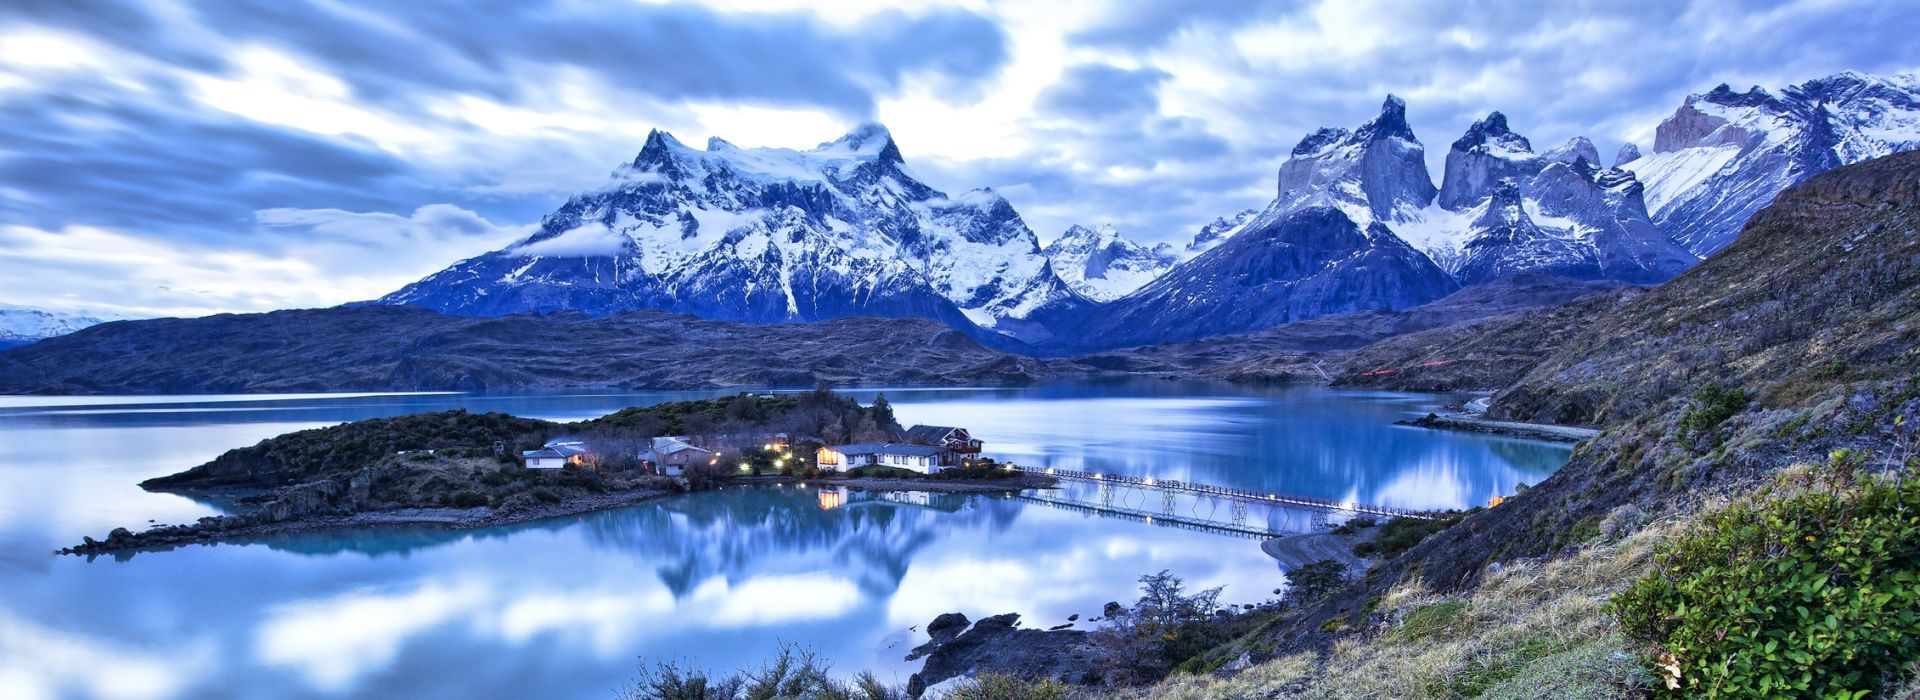 Cultural, religious and historic sites Tours in Chile